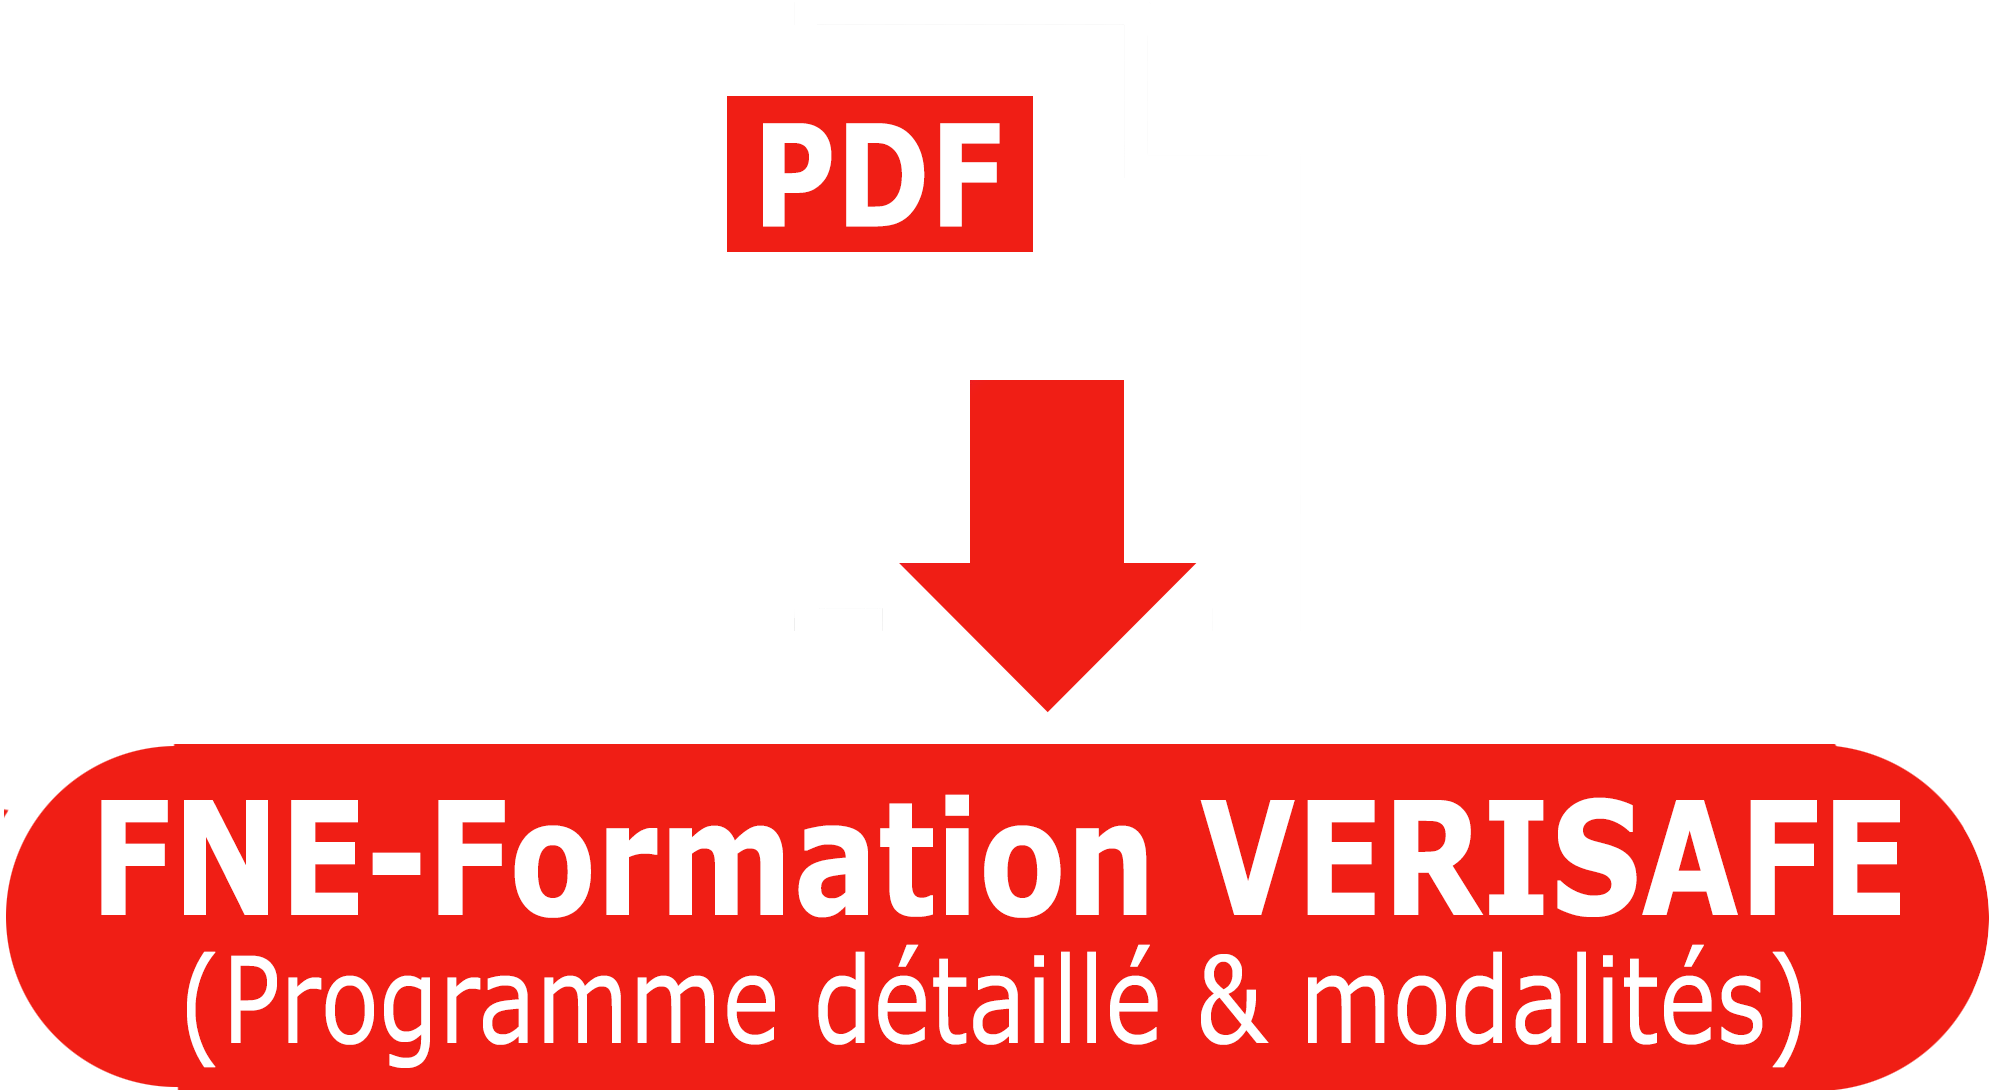 FNE-Formation COVID-19 2